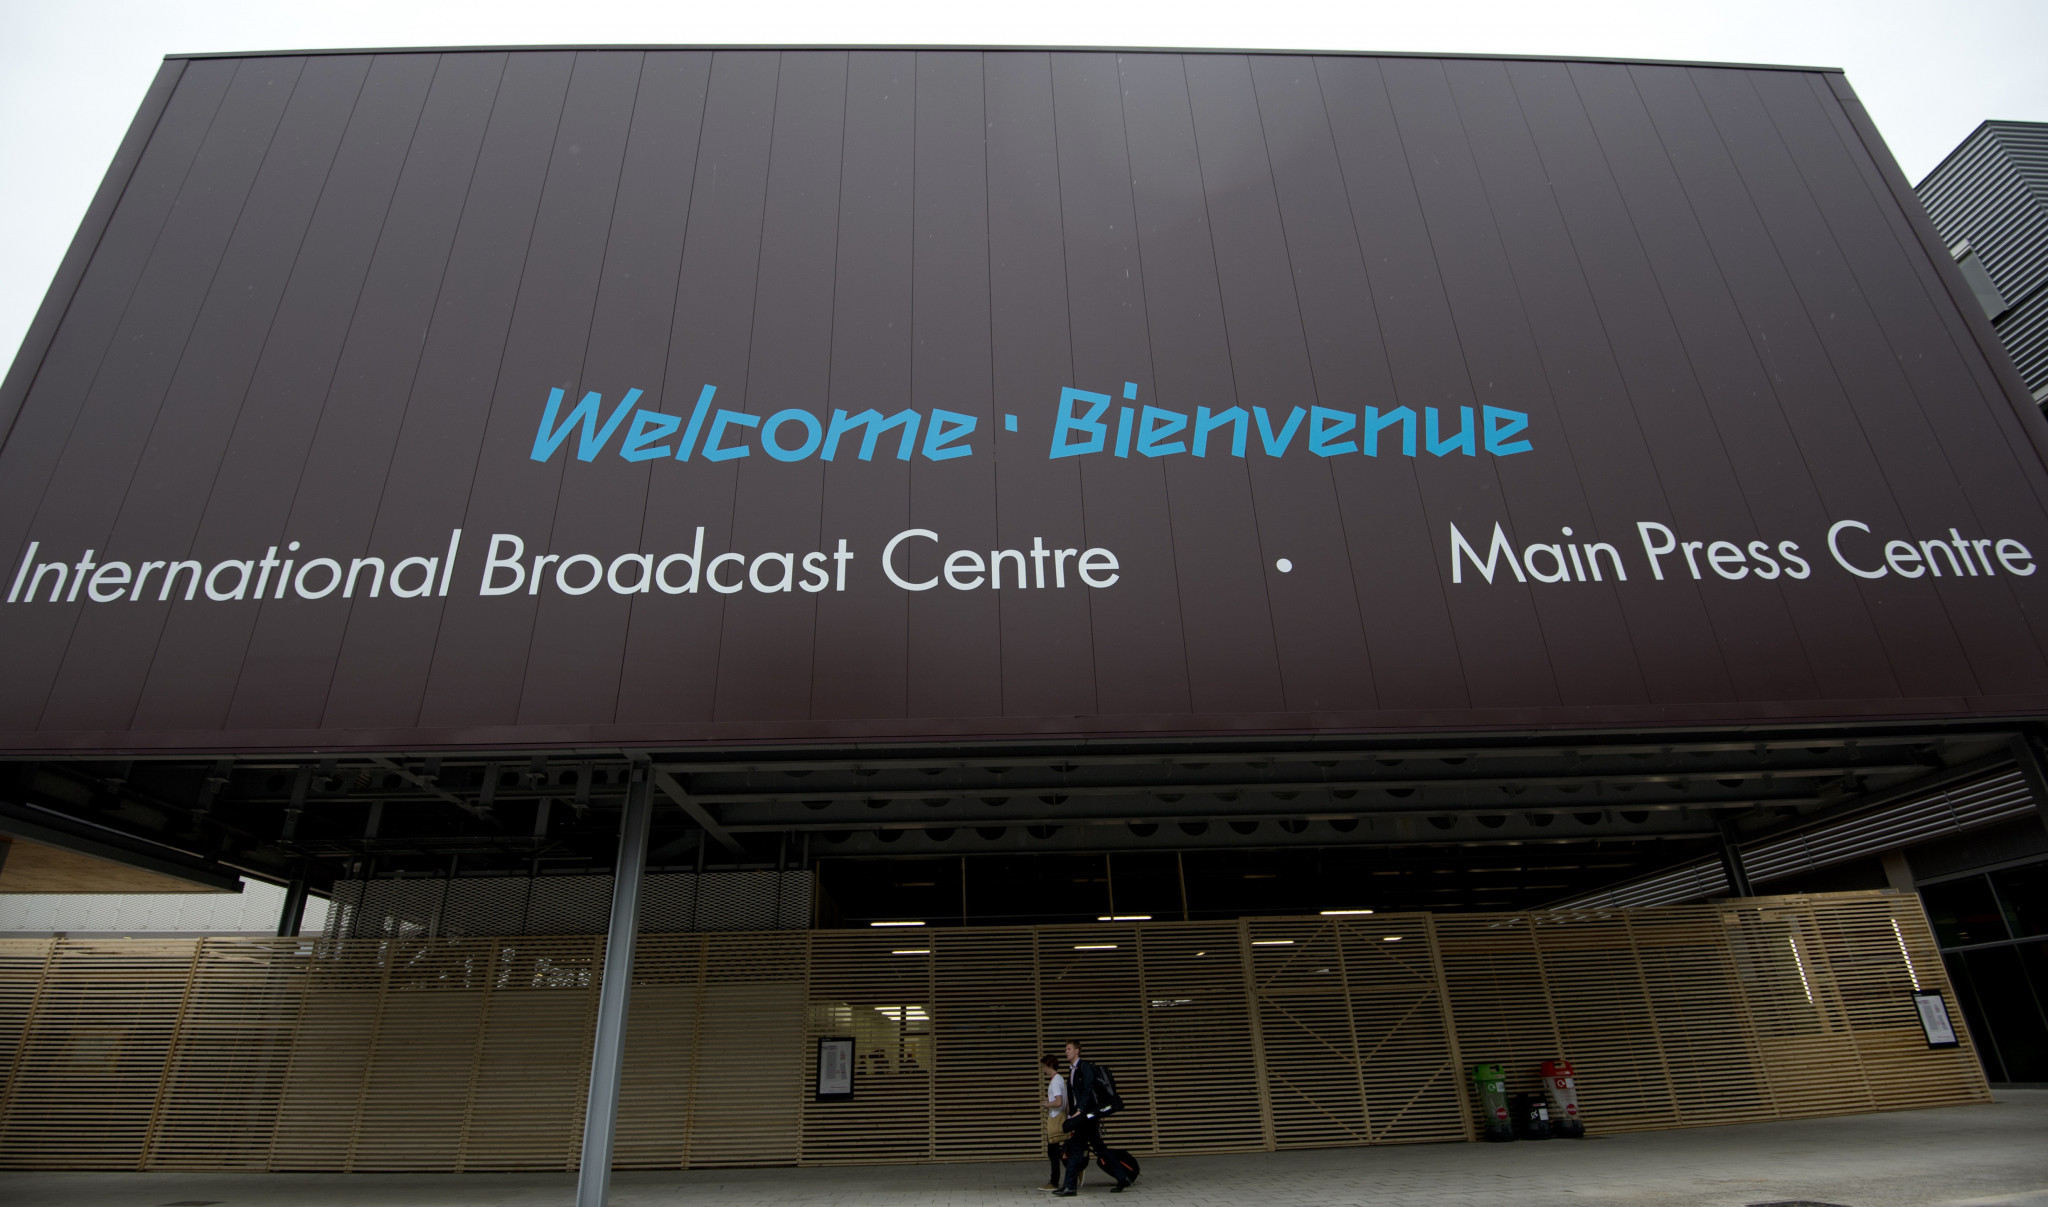 IOC publish video highlighting legacy of London 2012 International Broadcast Centre